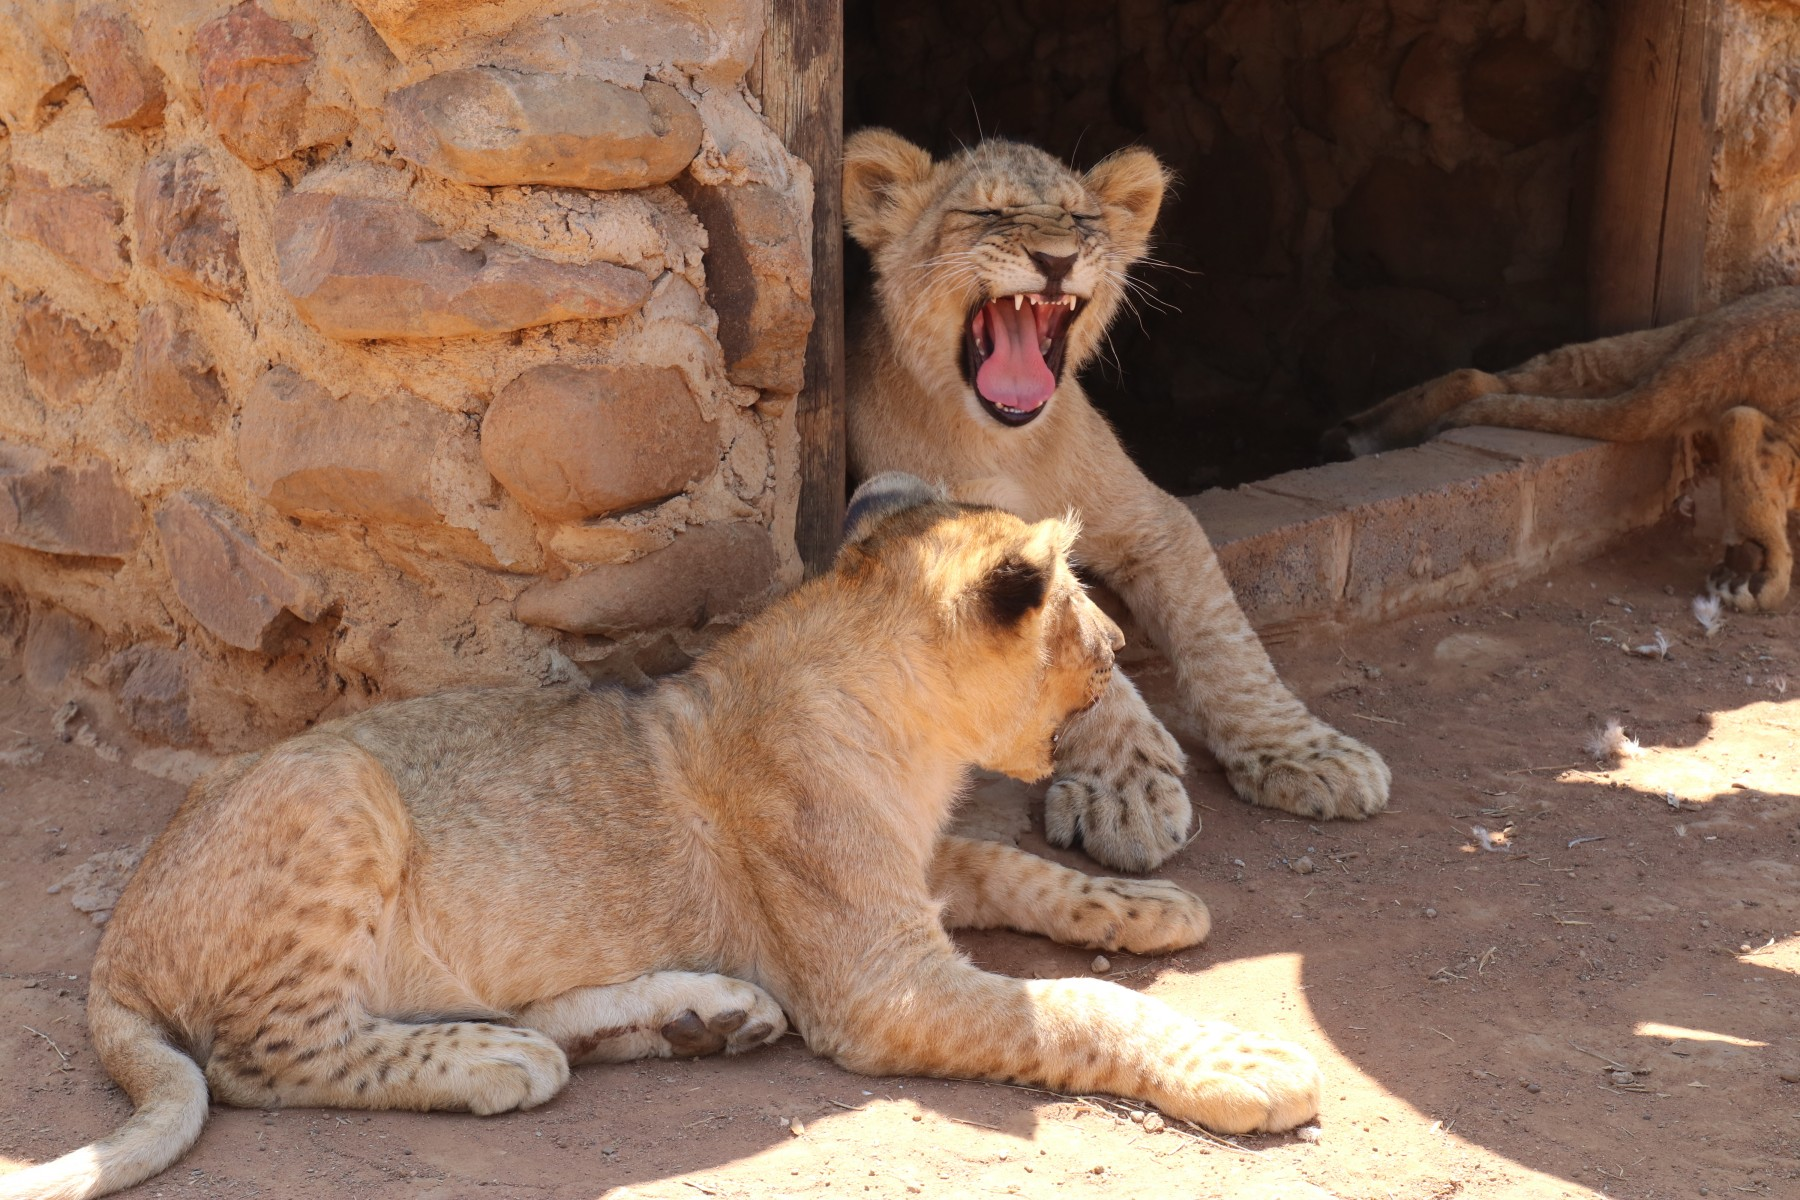 Two lion cubs at a facility in South Africa.